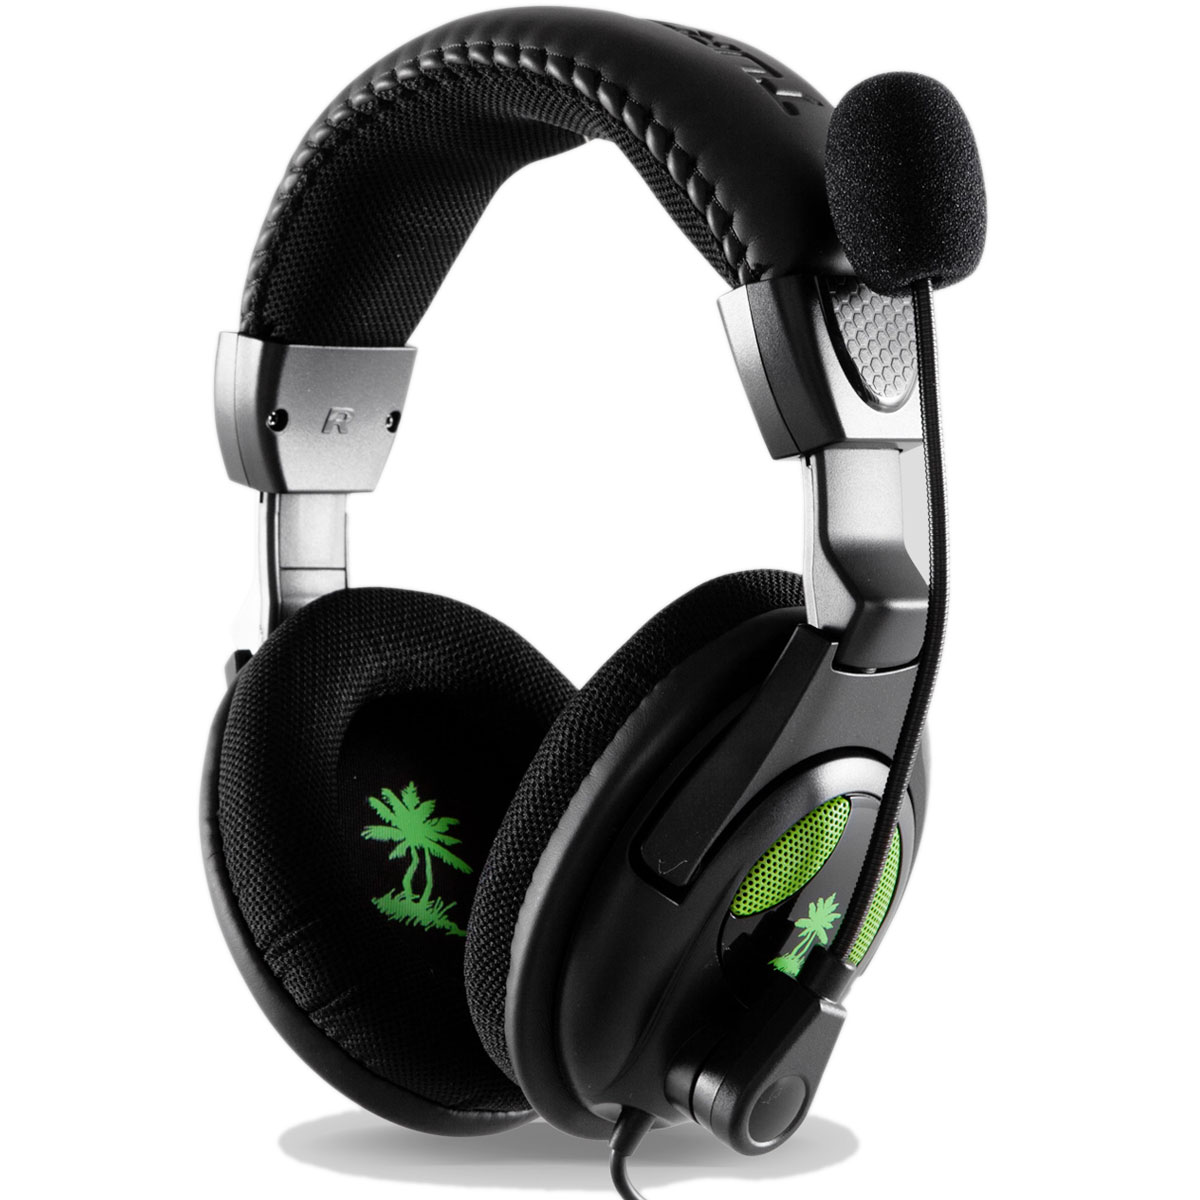 turtle beach ear force x12 micro casque turtle beach sur ldlc. Black Bedroom Furniture Sets. Home Design Ideas